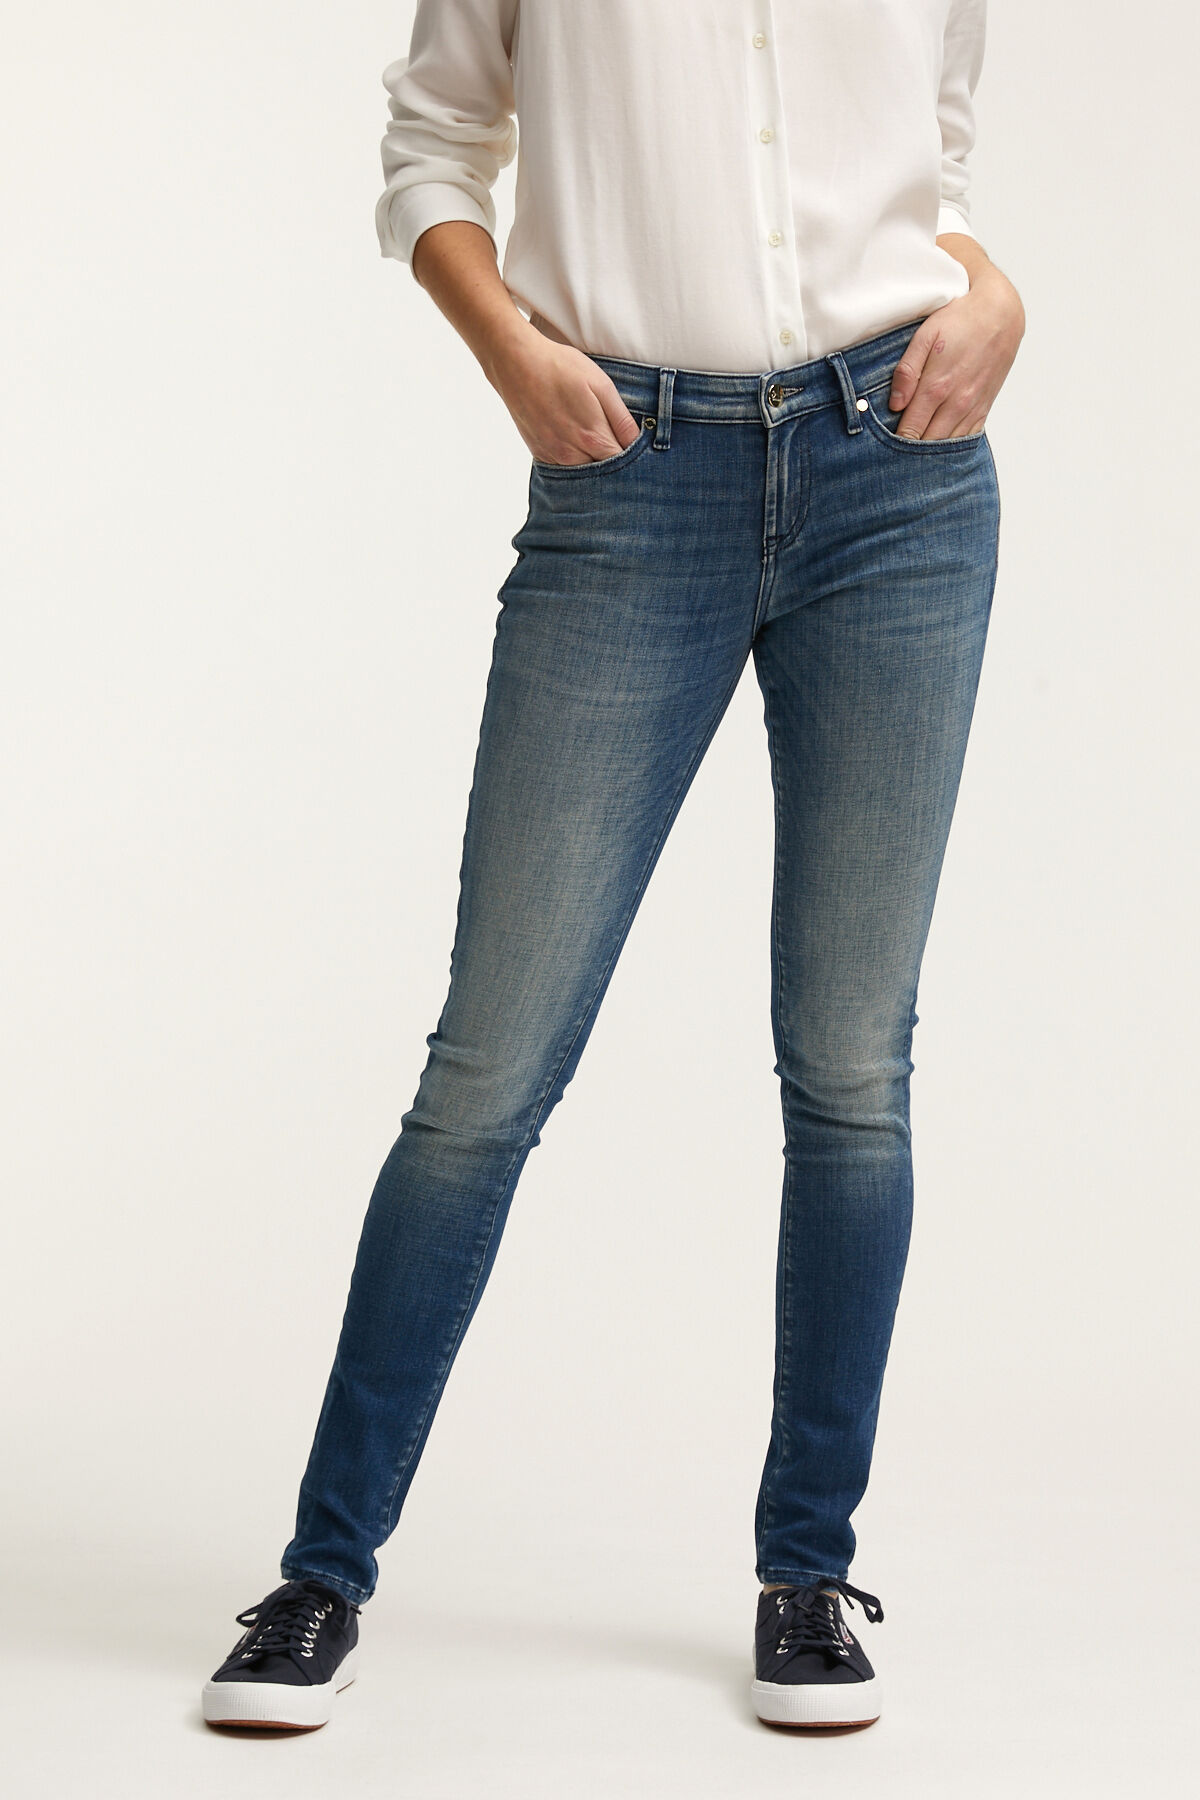 SHARP Indigo Organic Denim - Mid-rise, Skinny Fit